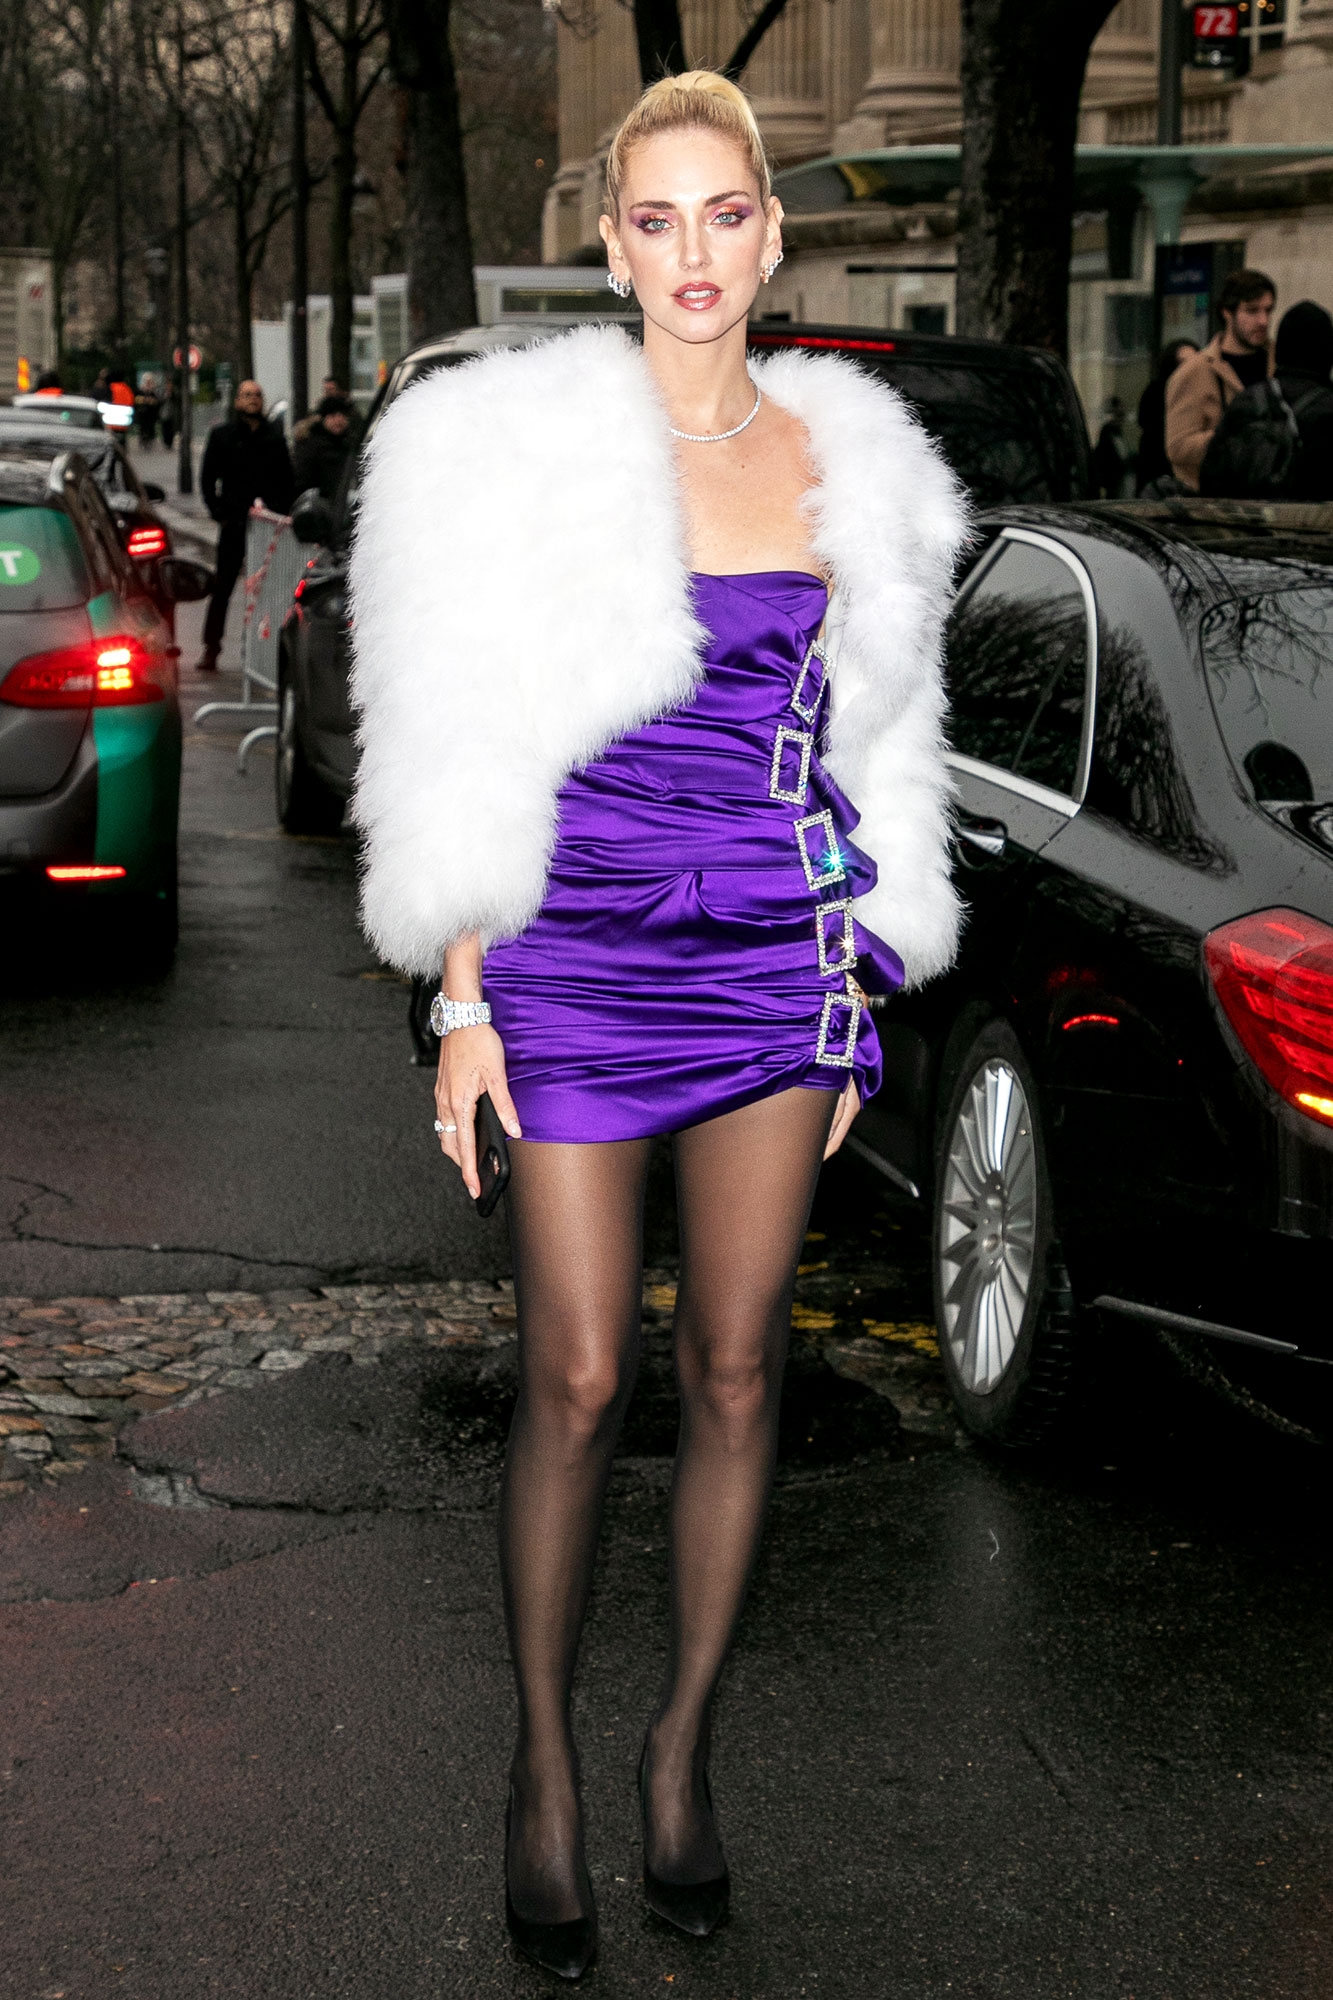 Chiara Ferragni - Keeping things super short and sweet, the blogger showed some leg in a purple ruched mini and furry white shrug on Tuesday, January 22.